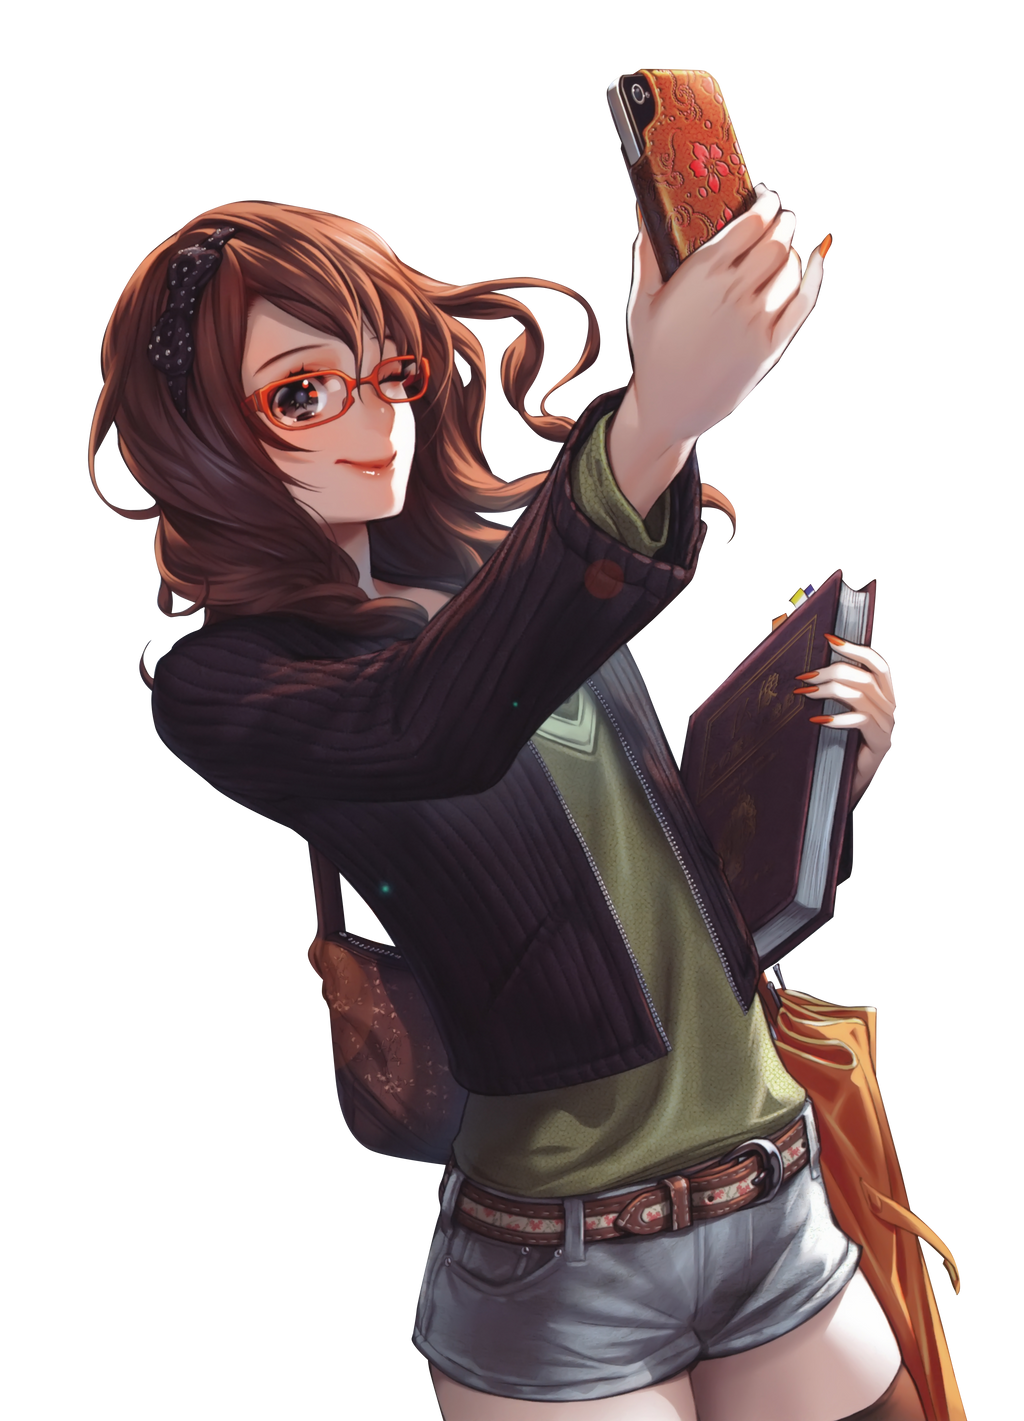 Amor mortal  Brown_hair_anime_girl_glasses_phone_render_png_by_seikiyukine-d85eu8p